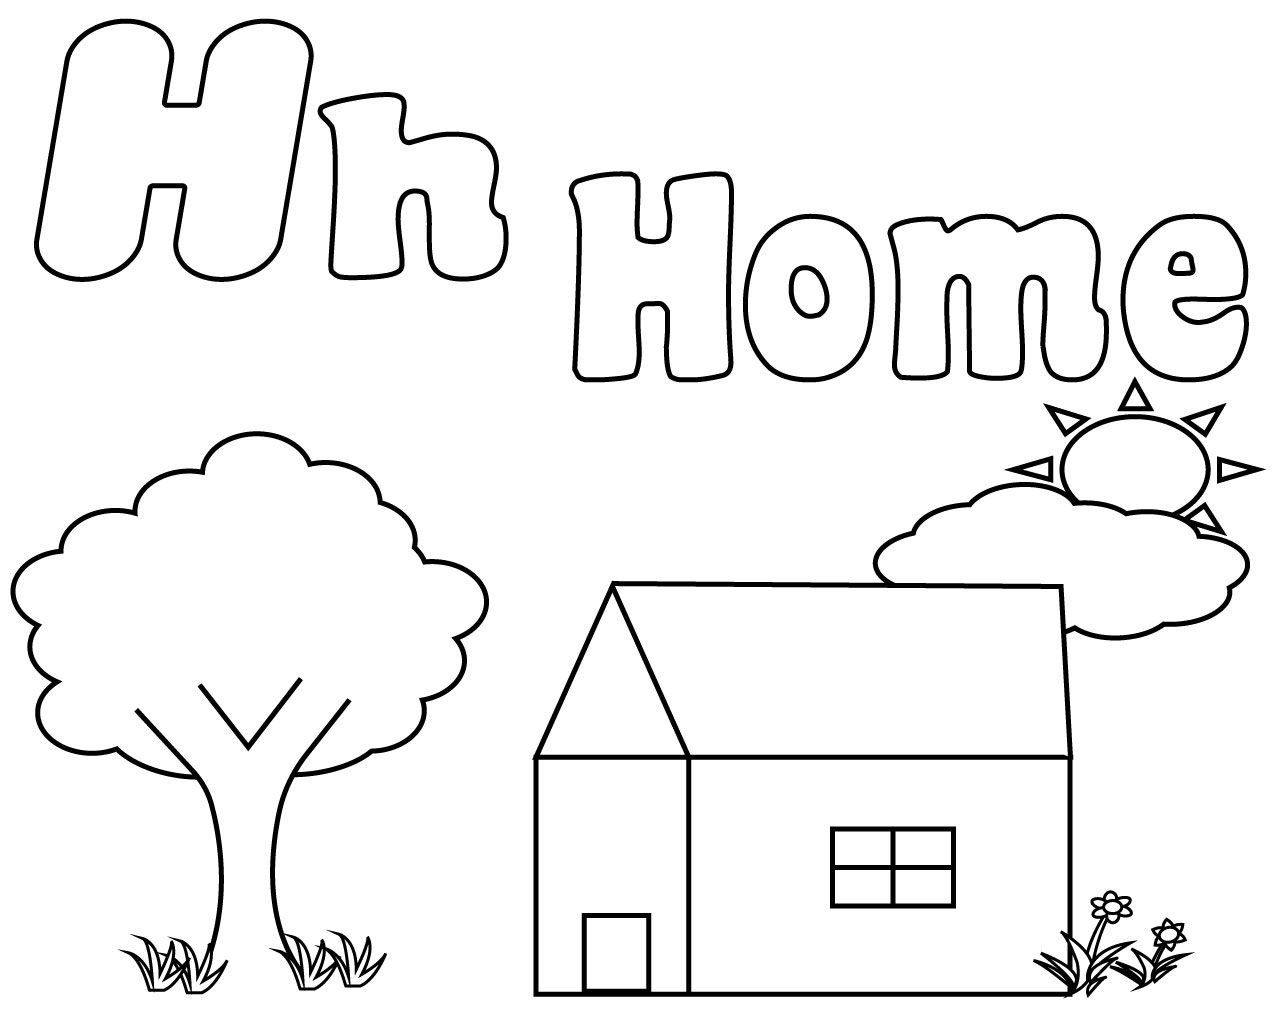 h coloring pages for kids letter h alphabet coloring pages for kids abc pages coloring for h kids